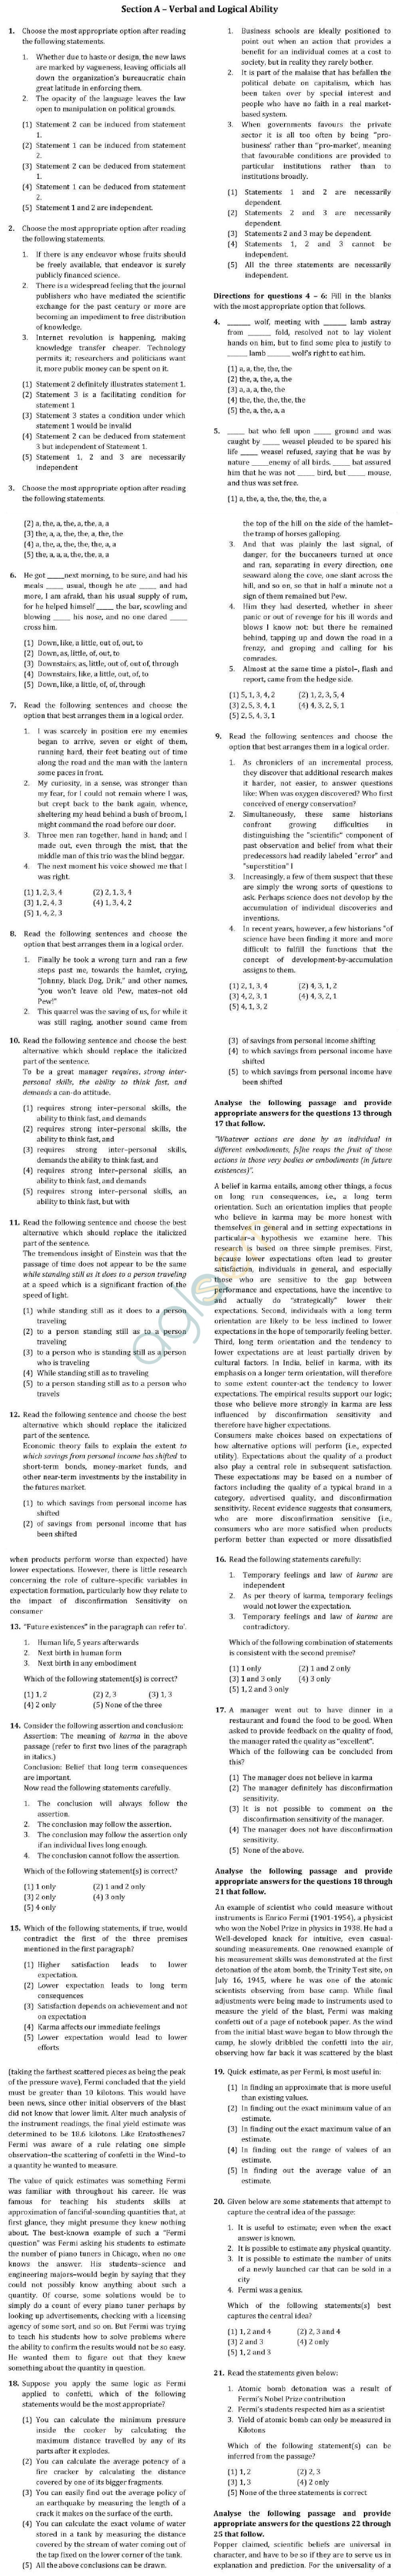 XAT 2013 Question Paper with Solutions